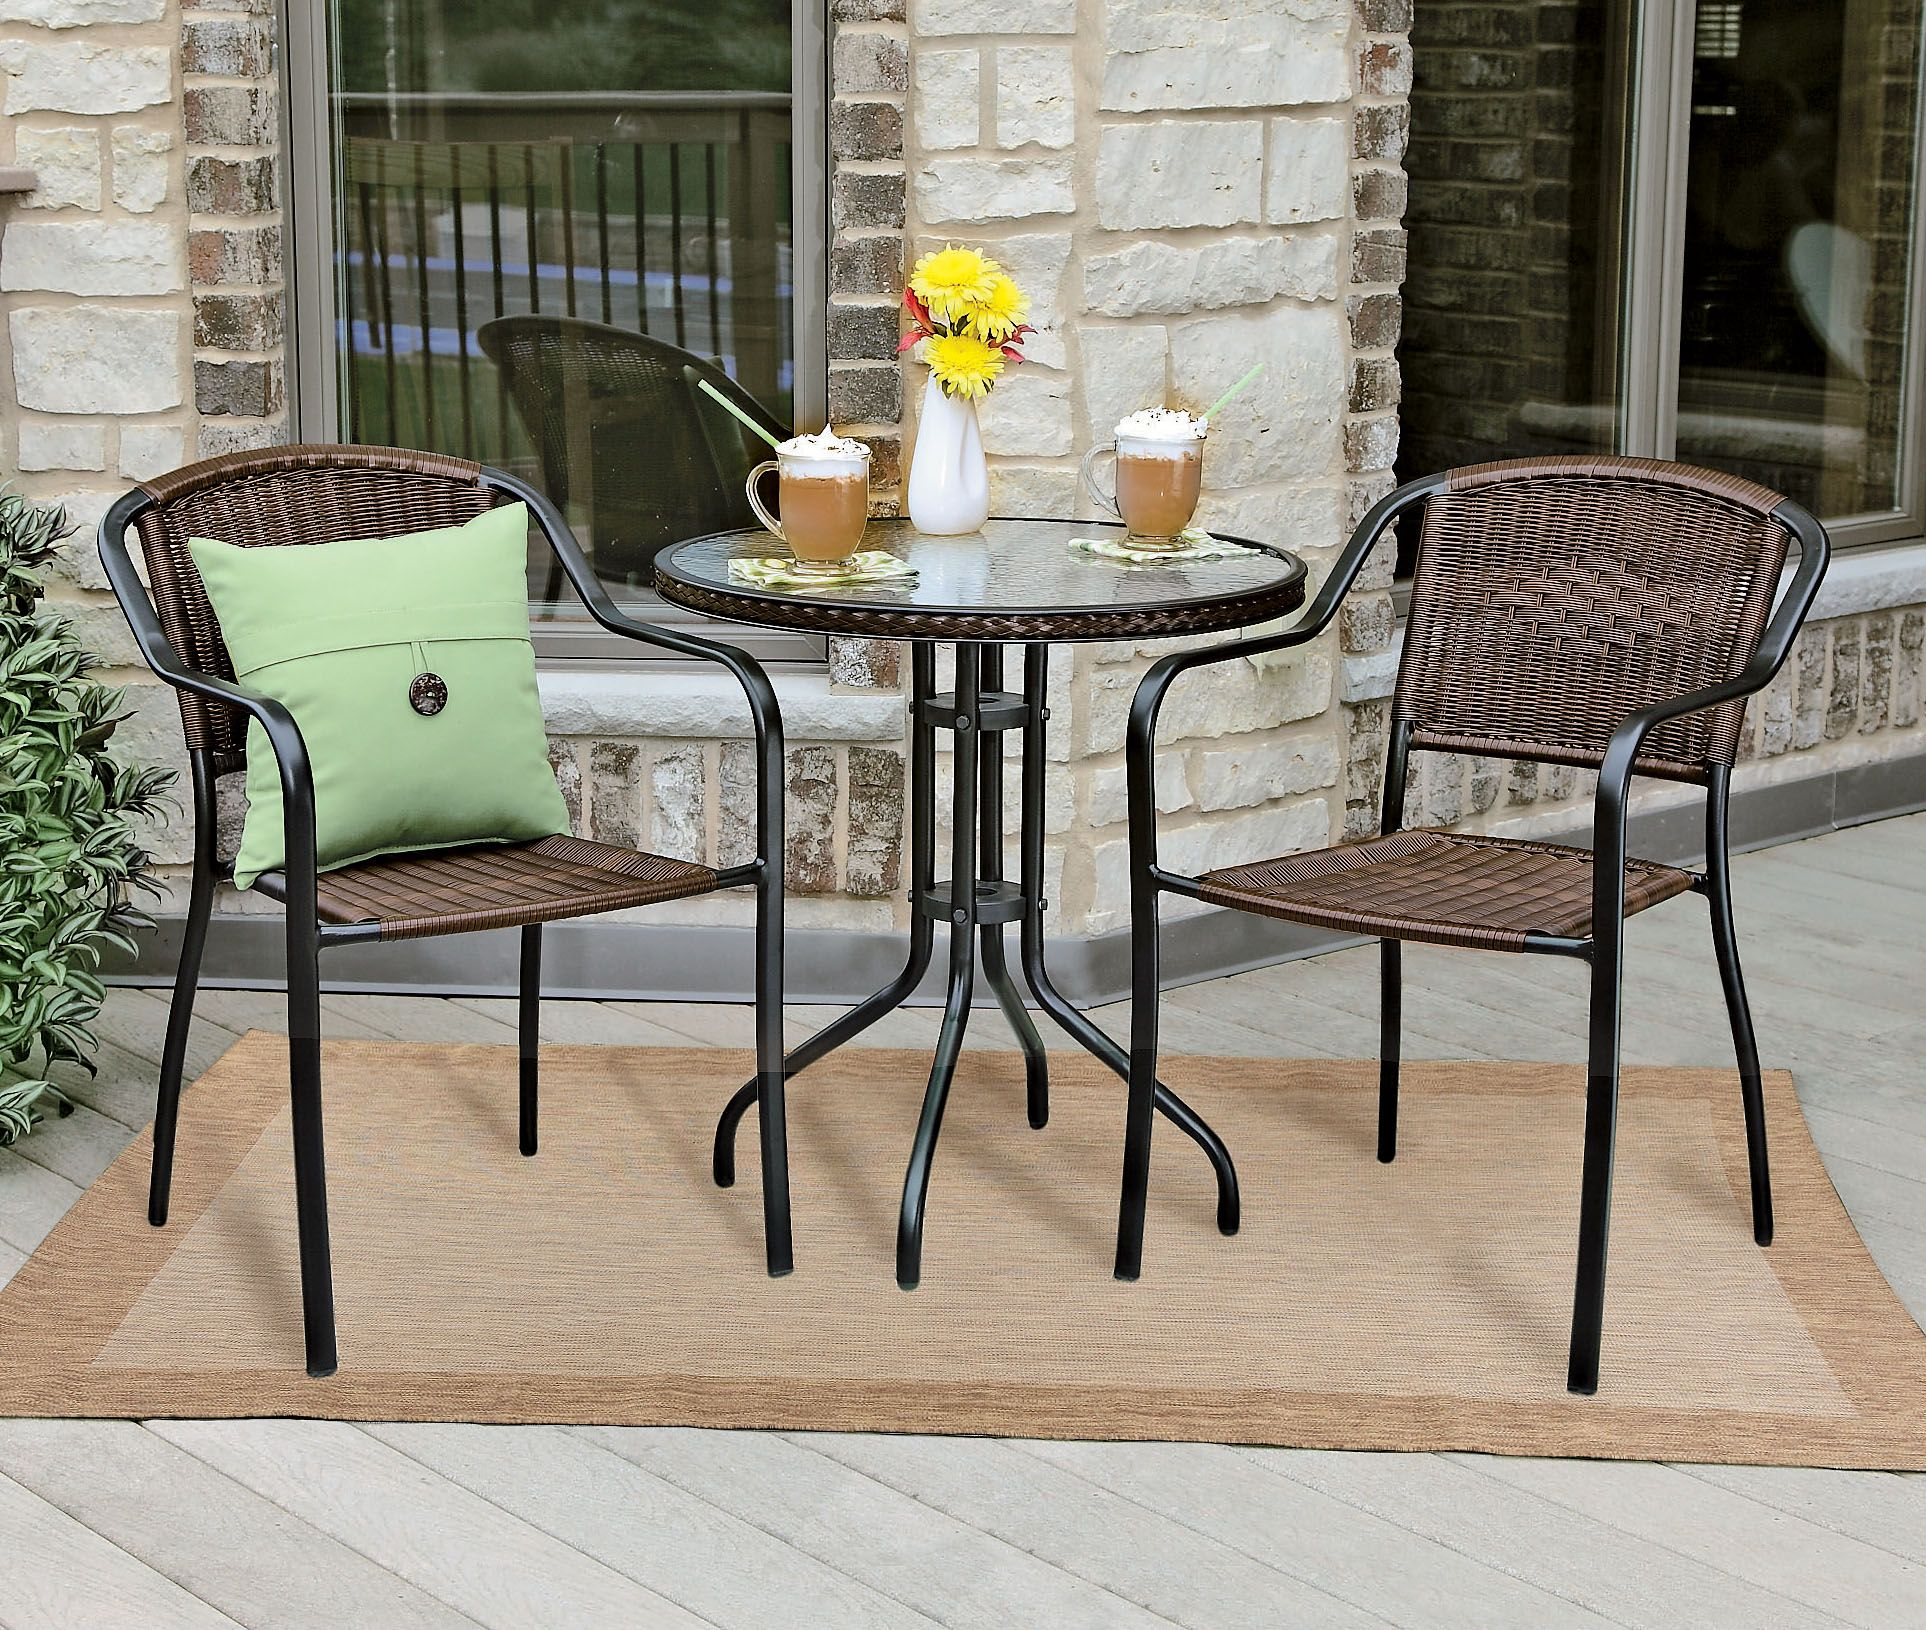 Enjoy Sunny Weather In The Comfort Of This 3 Piece Bistro Set Shopko Stylish Patio Furniture Outdoor Furniture Sets Outdoor Dining Table